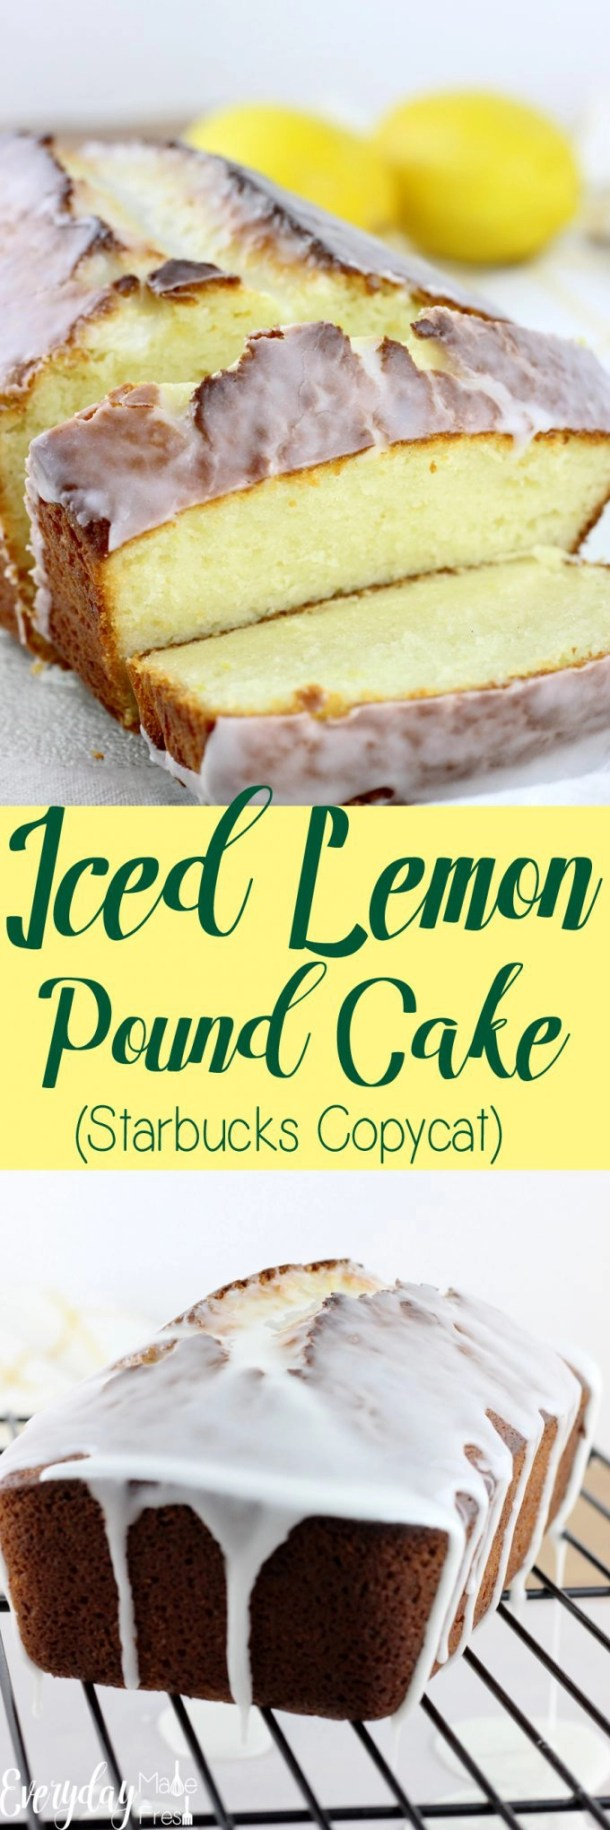 This Iced Lemon Pound Cake (Starbucks Copycat) is so easy to make, and far better than what you get from the coffee shop! | EverydayMadeFresh.com